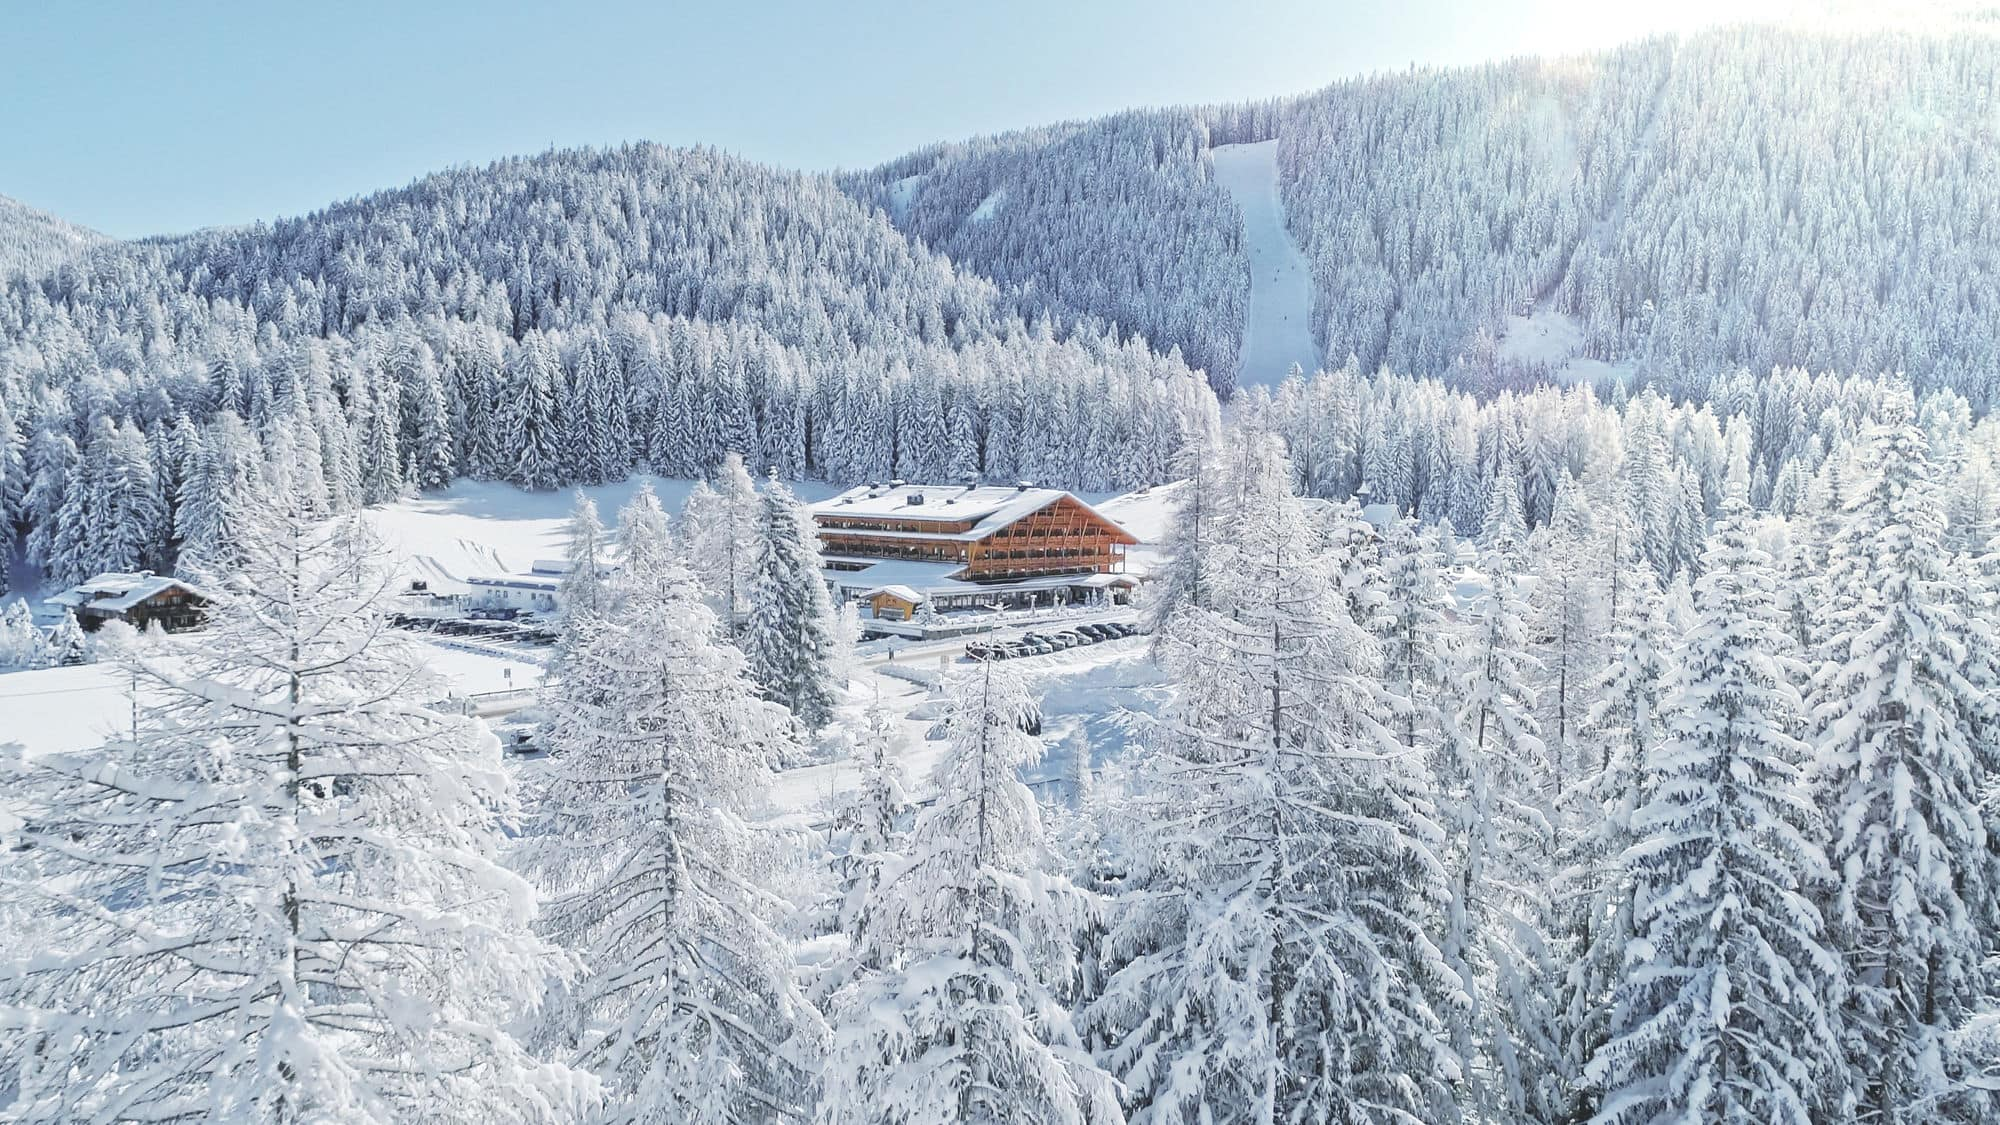 Wellness Bad Zell Bad Moos Dolomites Spa Resort Drei Zinnen Crystal Ski